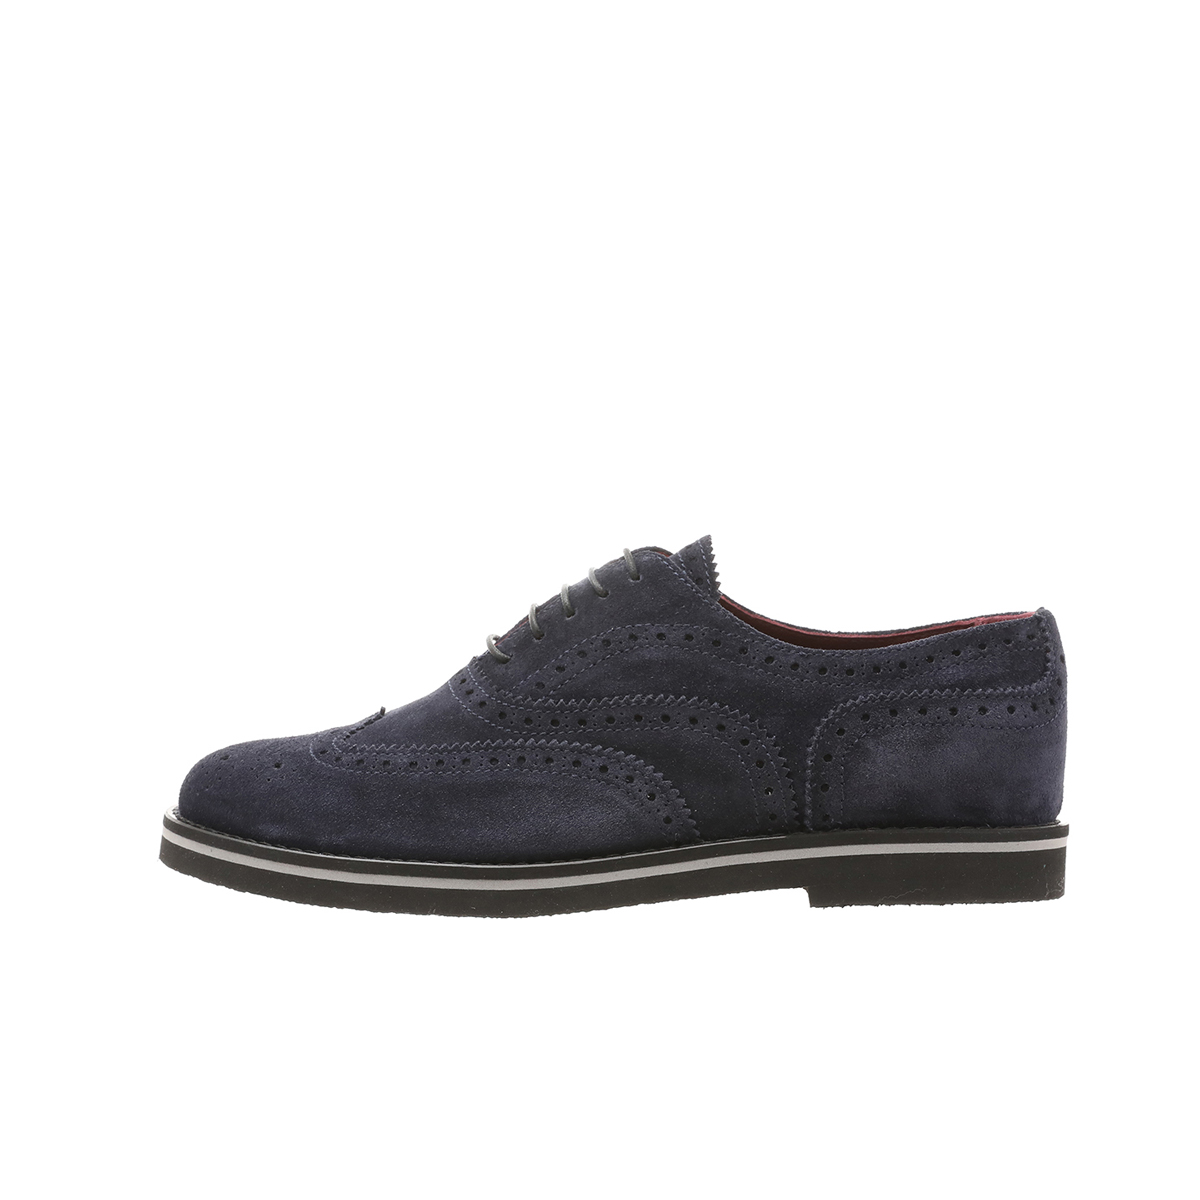 Casual Light Rubber Sole Lace Up